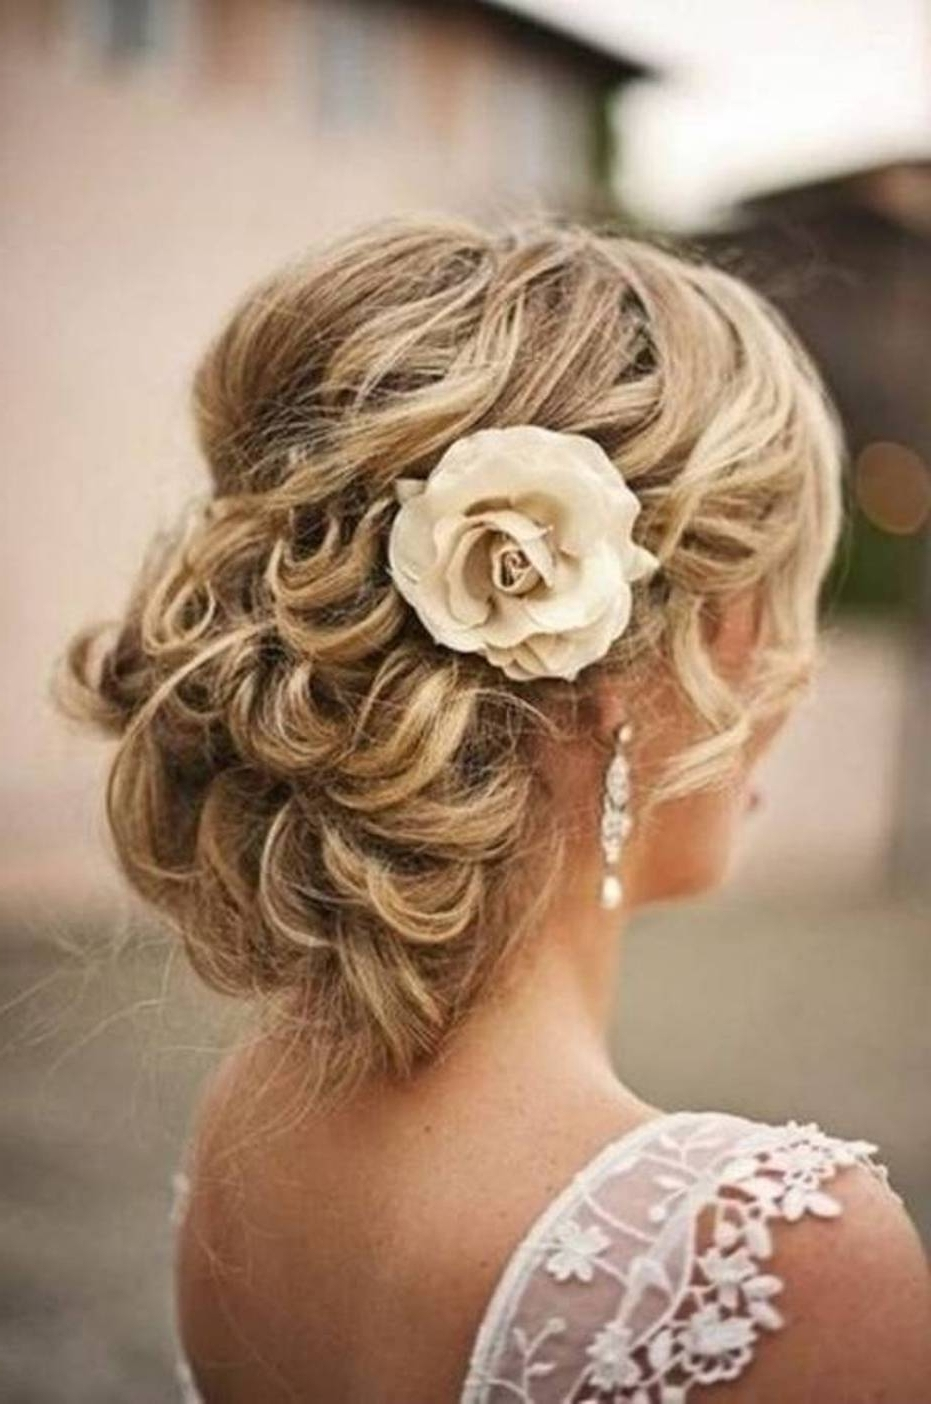 Wedding Hairstyles For Long Hair Updo Wedding Hairstyles Ideas: Side Throughout Most Recent Low Updo Wedding Hairstyles (View 11 of 15)